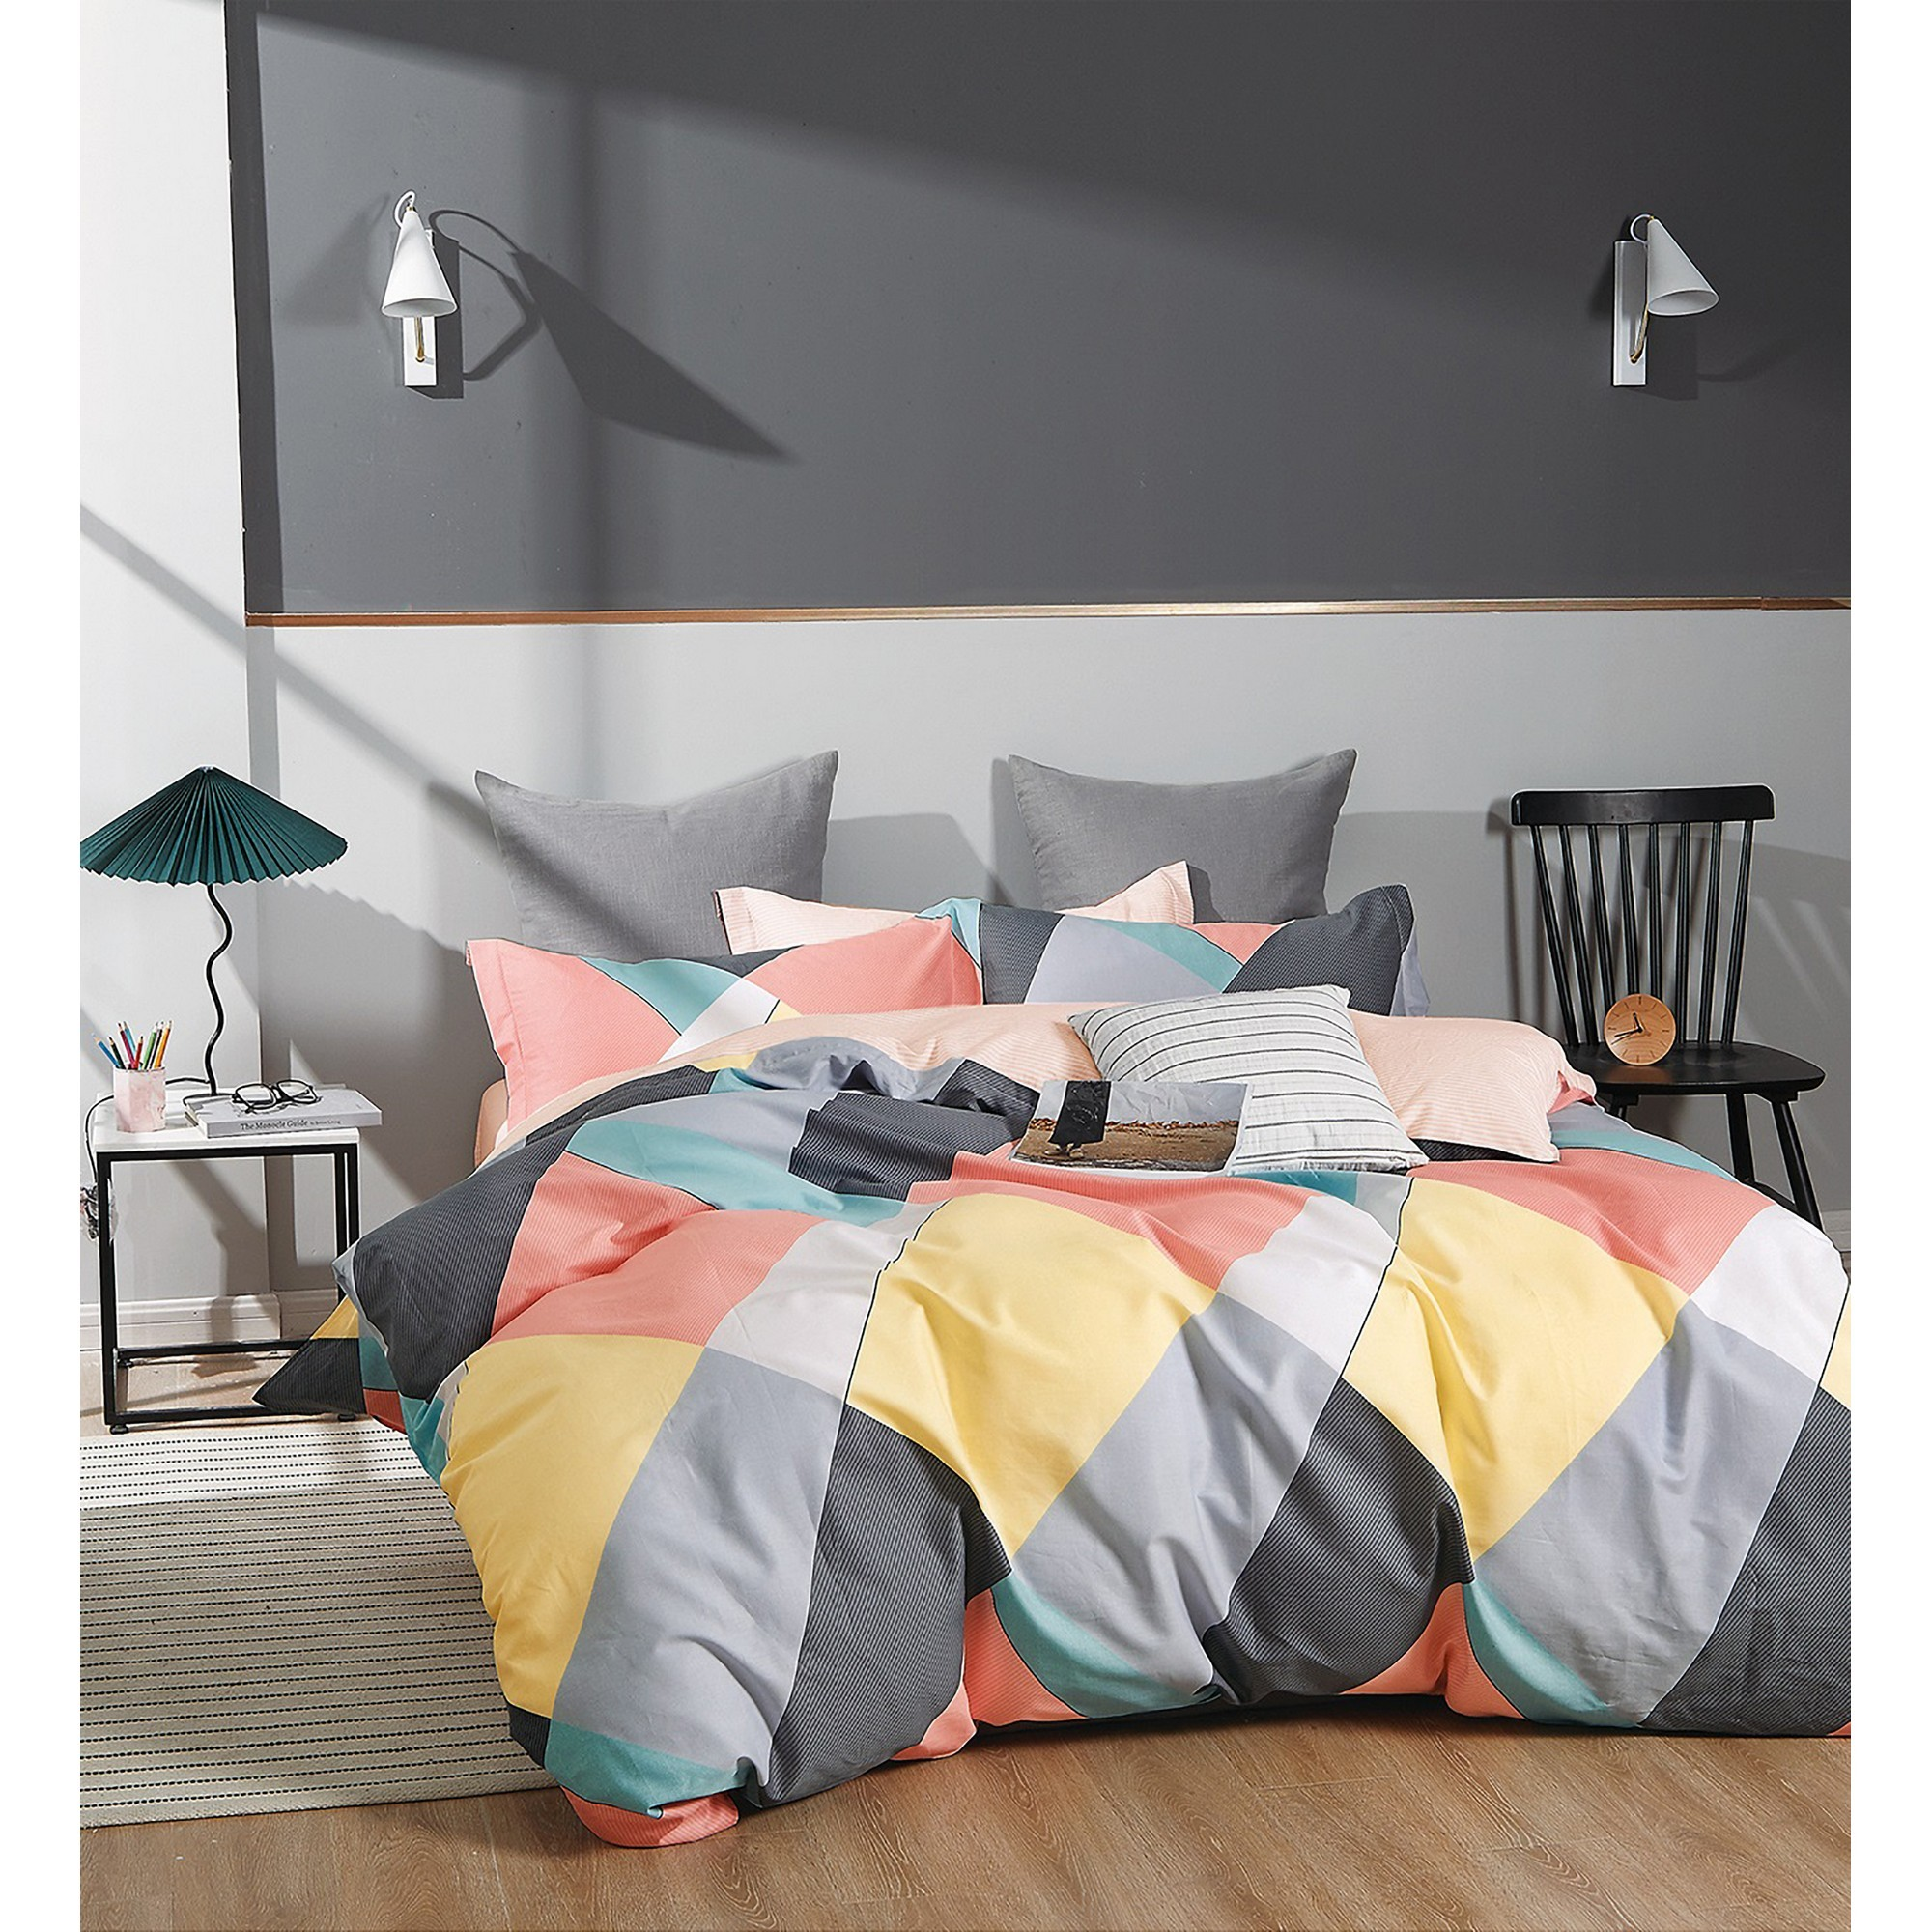 Ardor Sommer Cotton Quilt Cover Set, Double